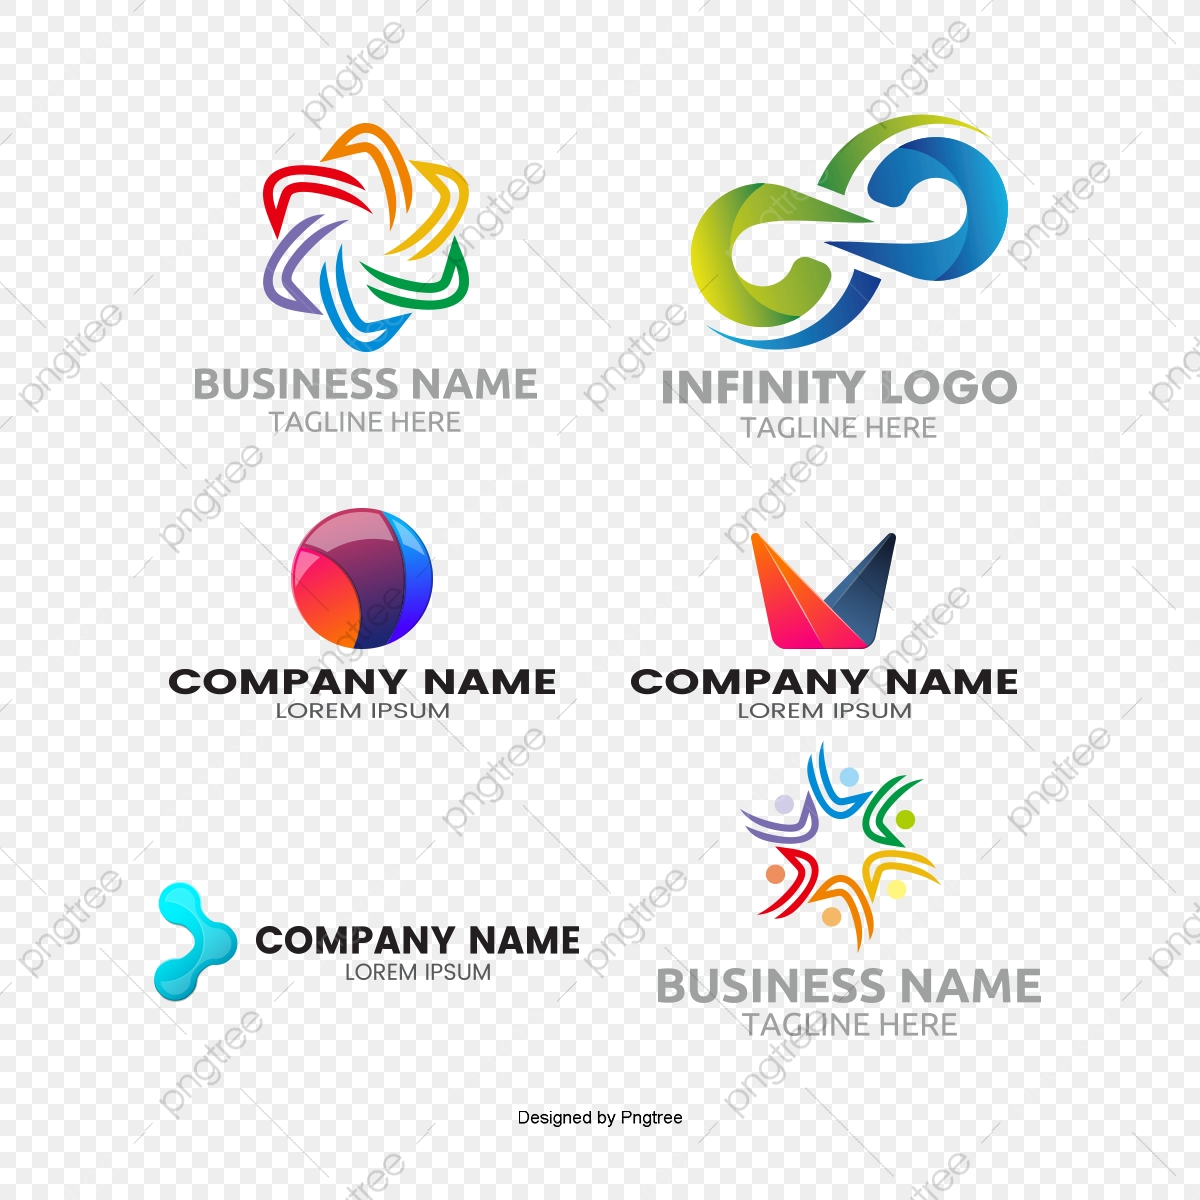 Logo Logo Design Vector Round Free Logo Design Template Mark Logo Design Material Geometry Png Transparent Clipart Image And Psd File For Free Download